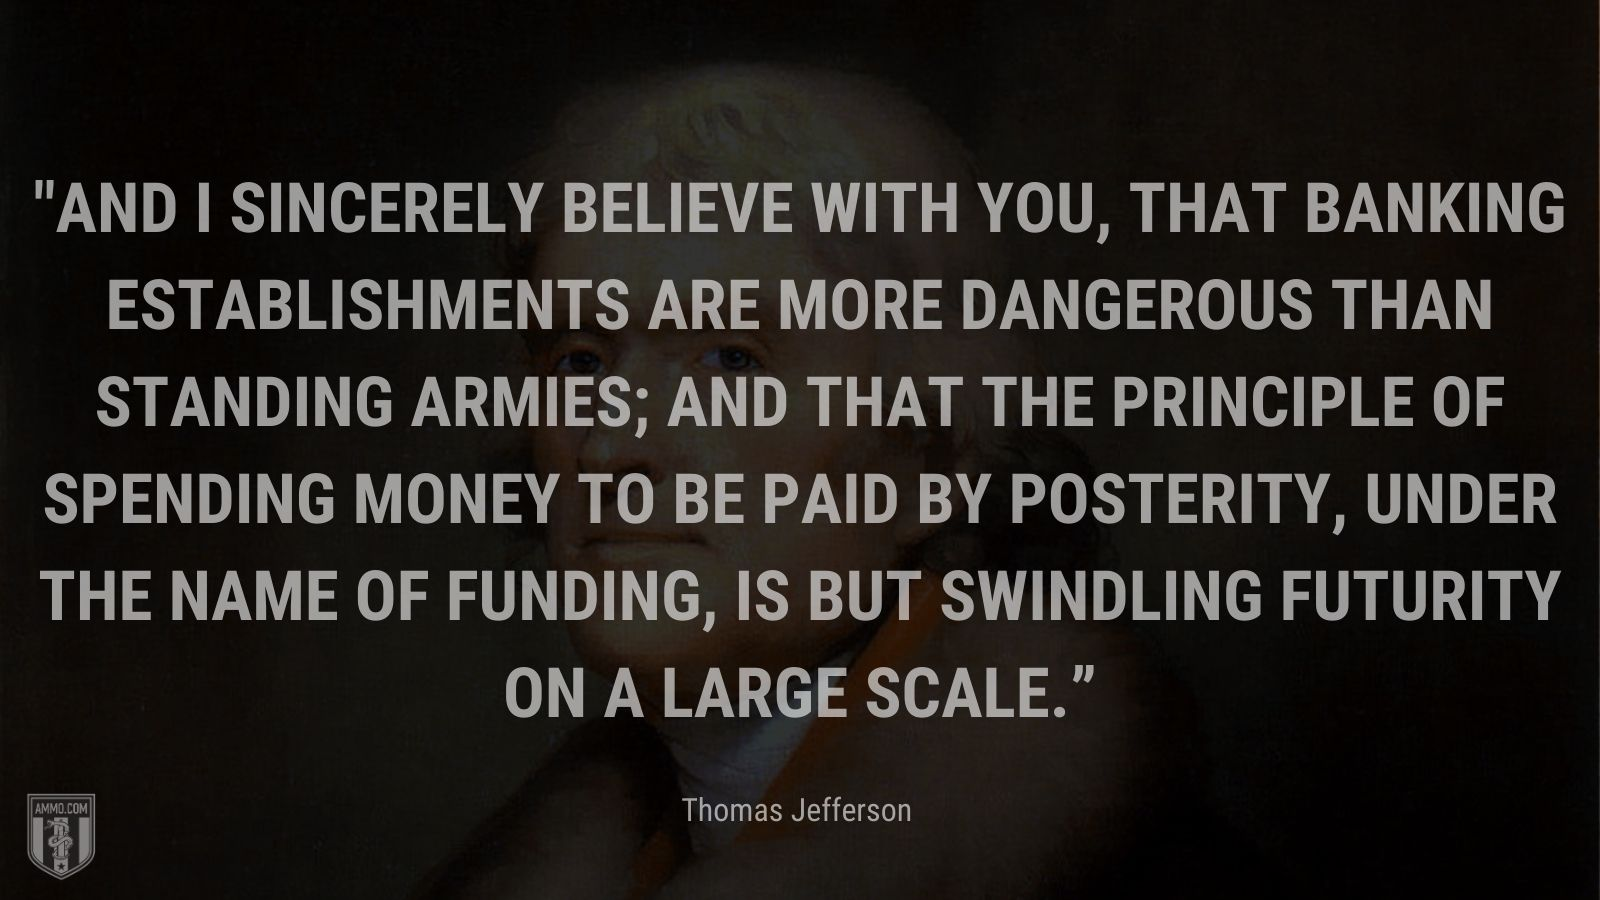 """""""And I sincerely believe with you, that banking establishments are more dangerous than standing armies; and that the principle of spending money to be paid by posterity, under the name of funding, is but swindling futurity on a large scale."""" - Thomas Jefferson"""